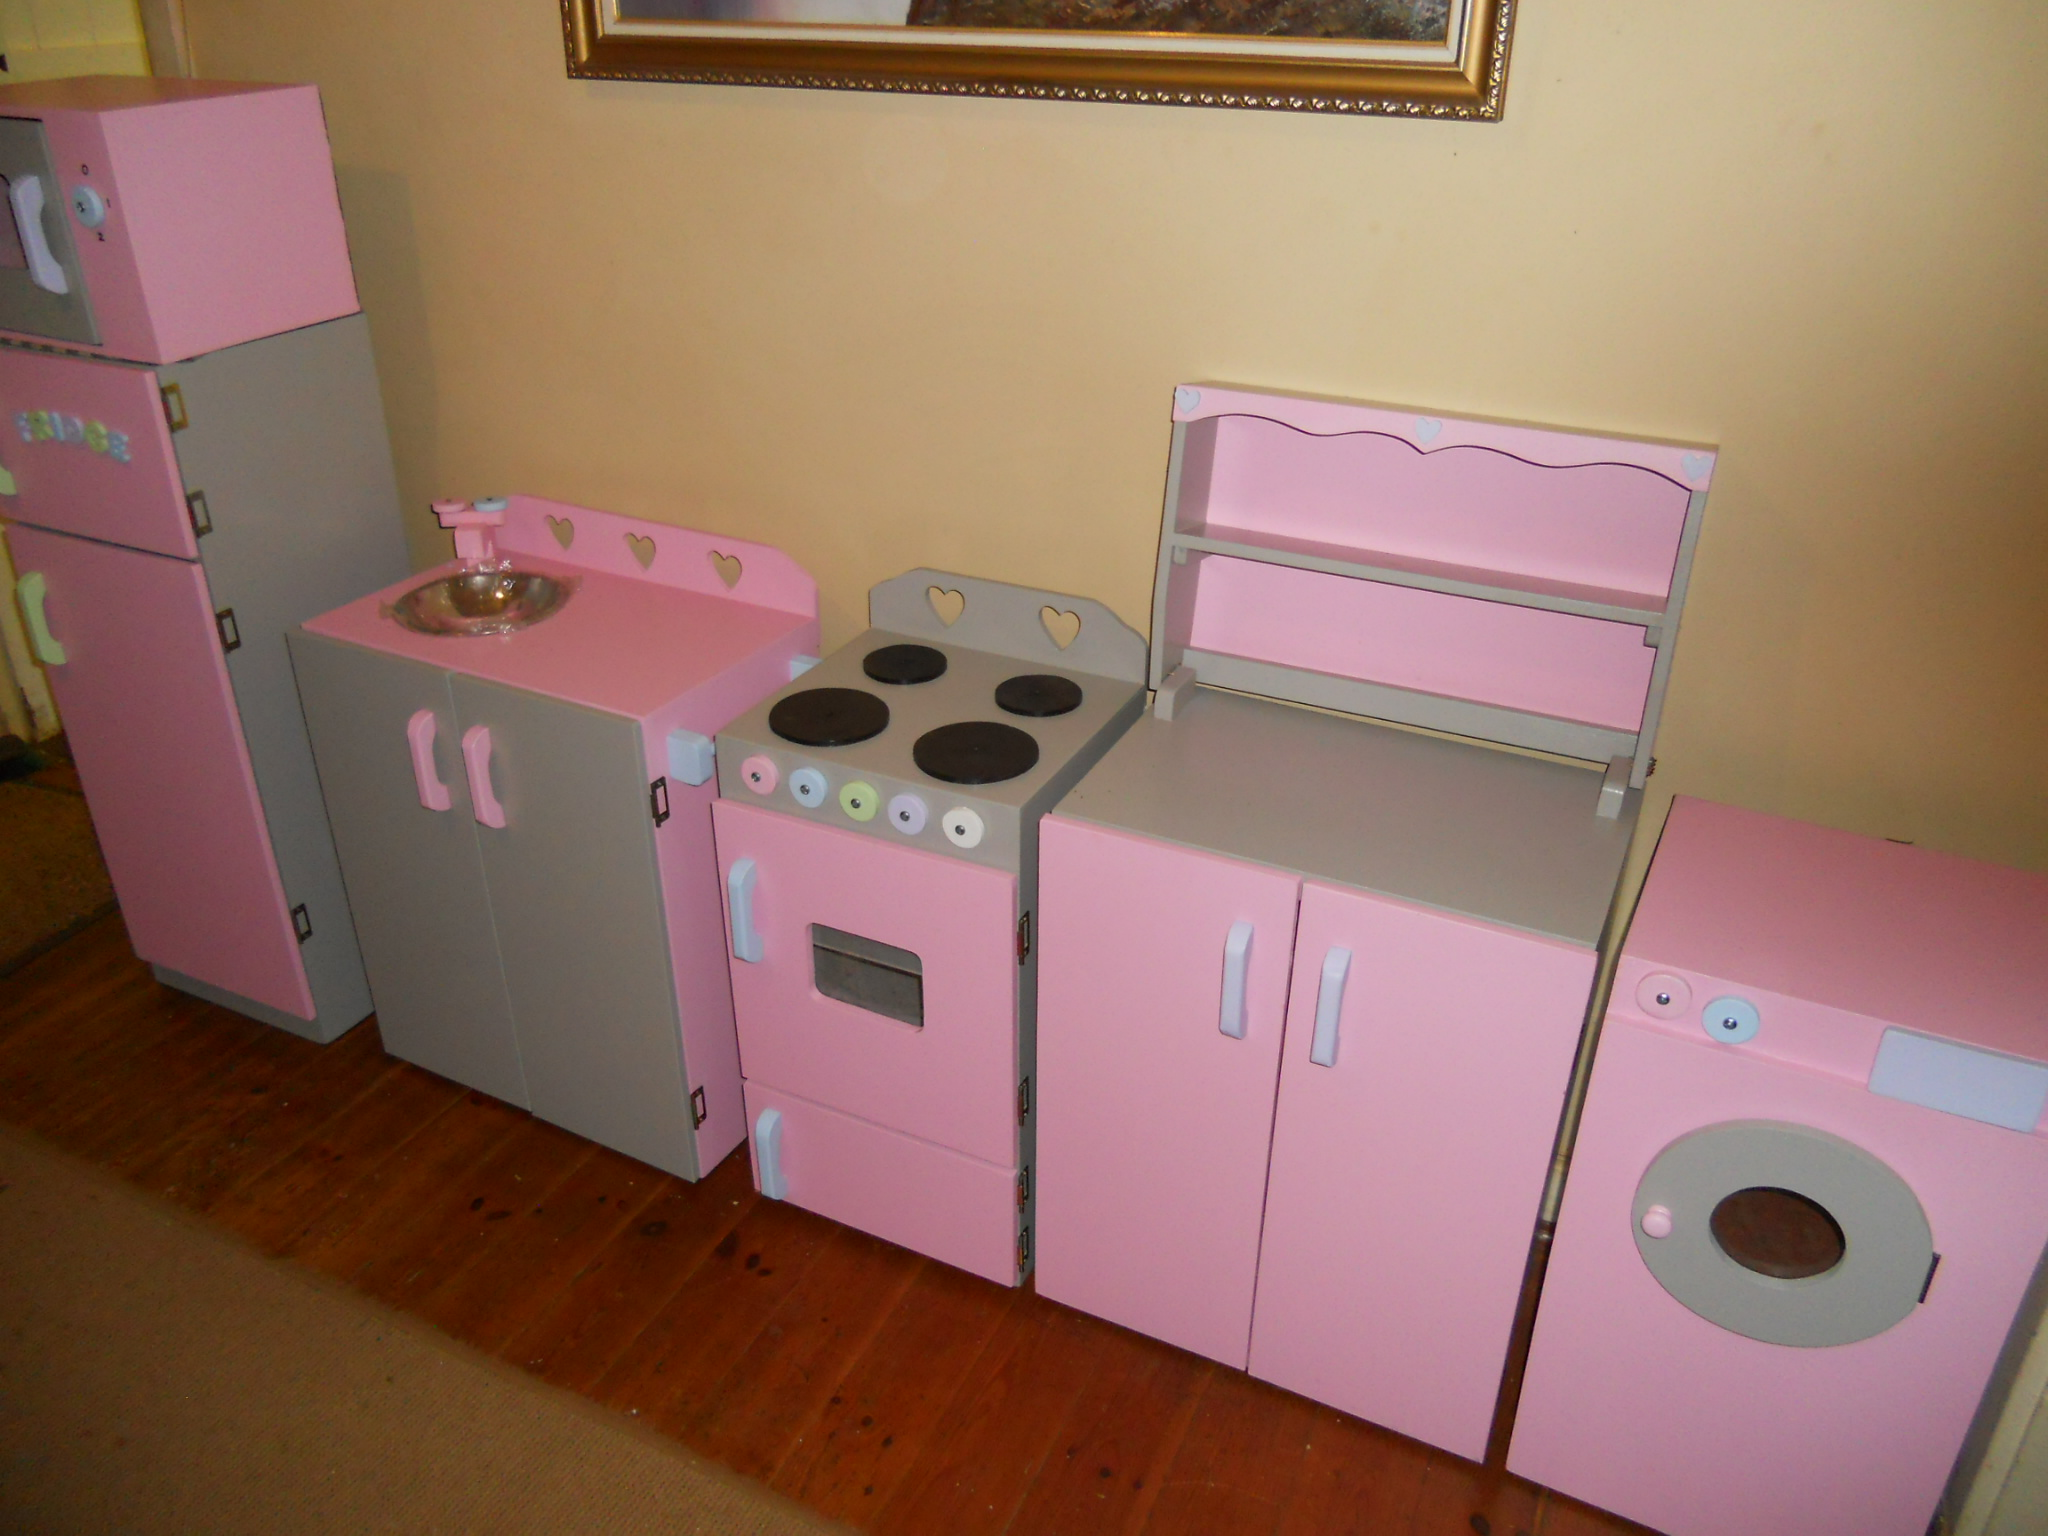 Fridge, sink,stove, dresser, washing machine and microwave painted in Grey and pink